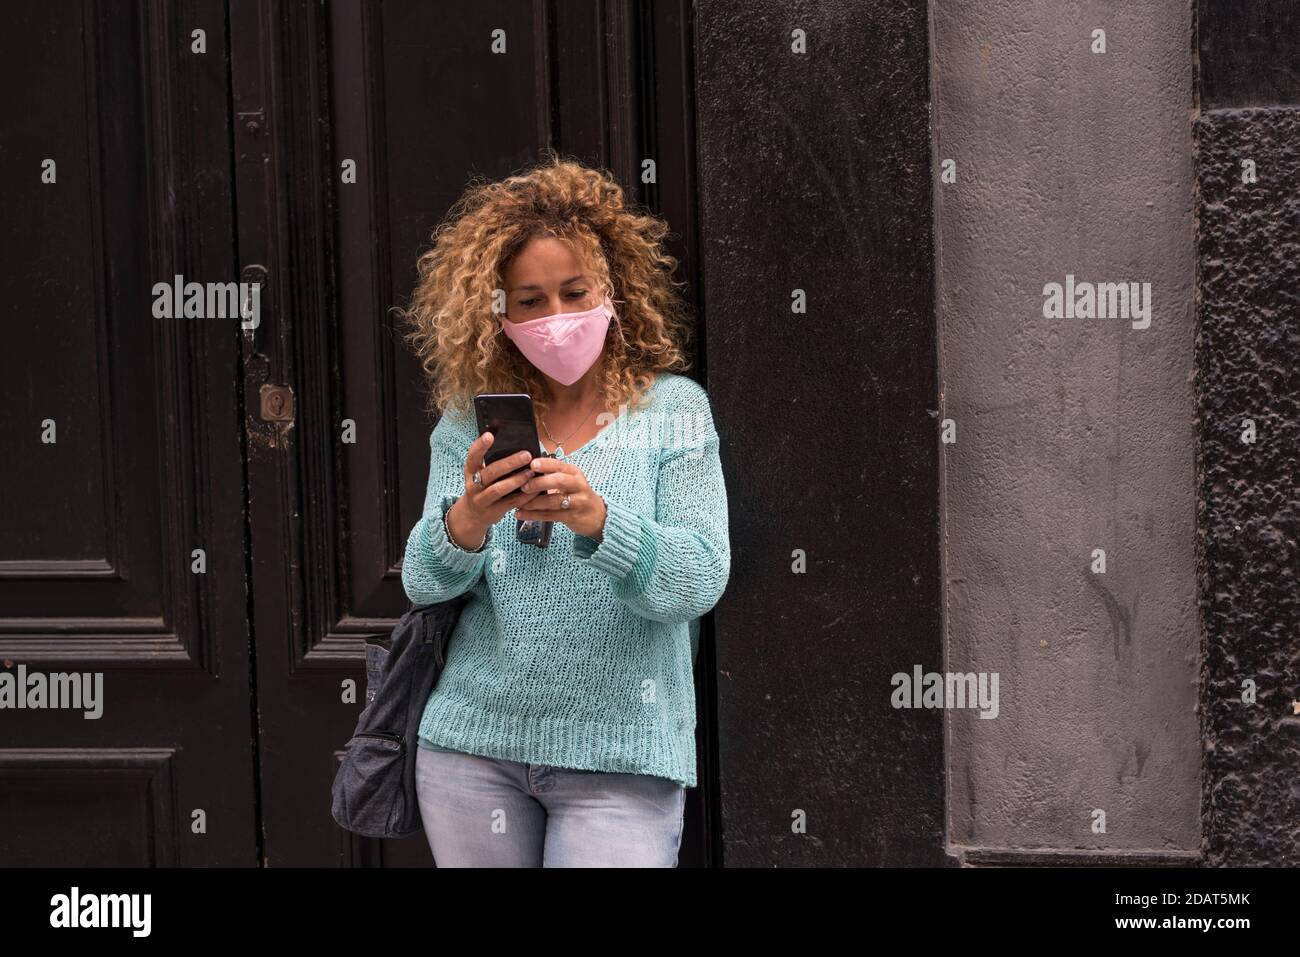 Adult woman wear protection mask against covid-19 coronavirus virus emergency - protect yourself people with anti virus accessory - female in the town Stock Photo